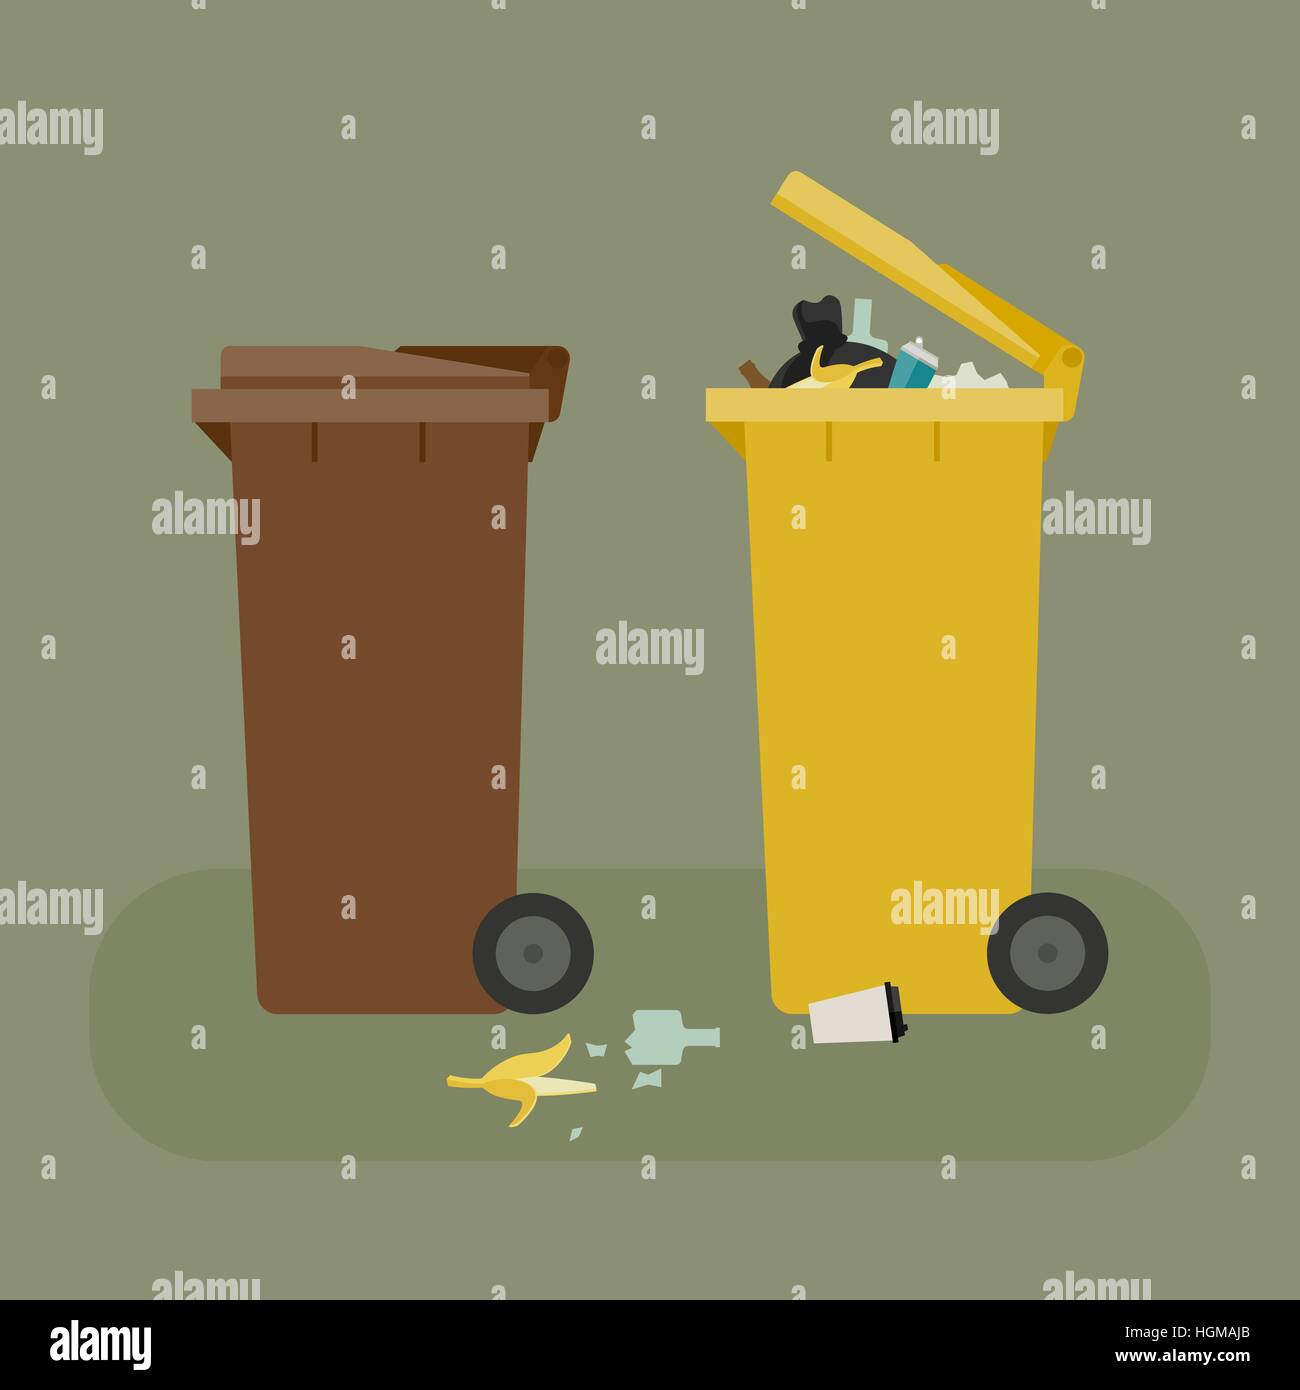 Dumpsters with garbage - Stock Vector